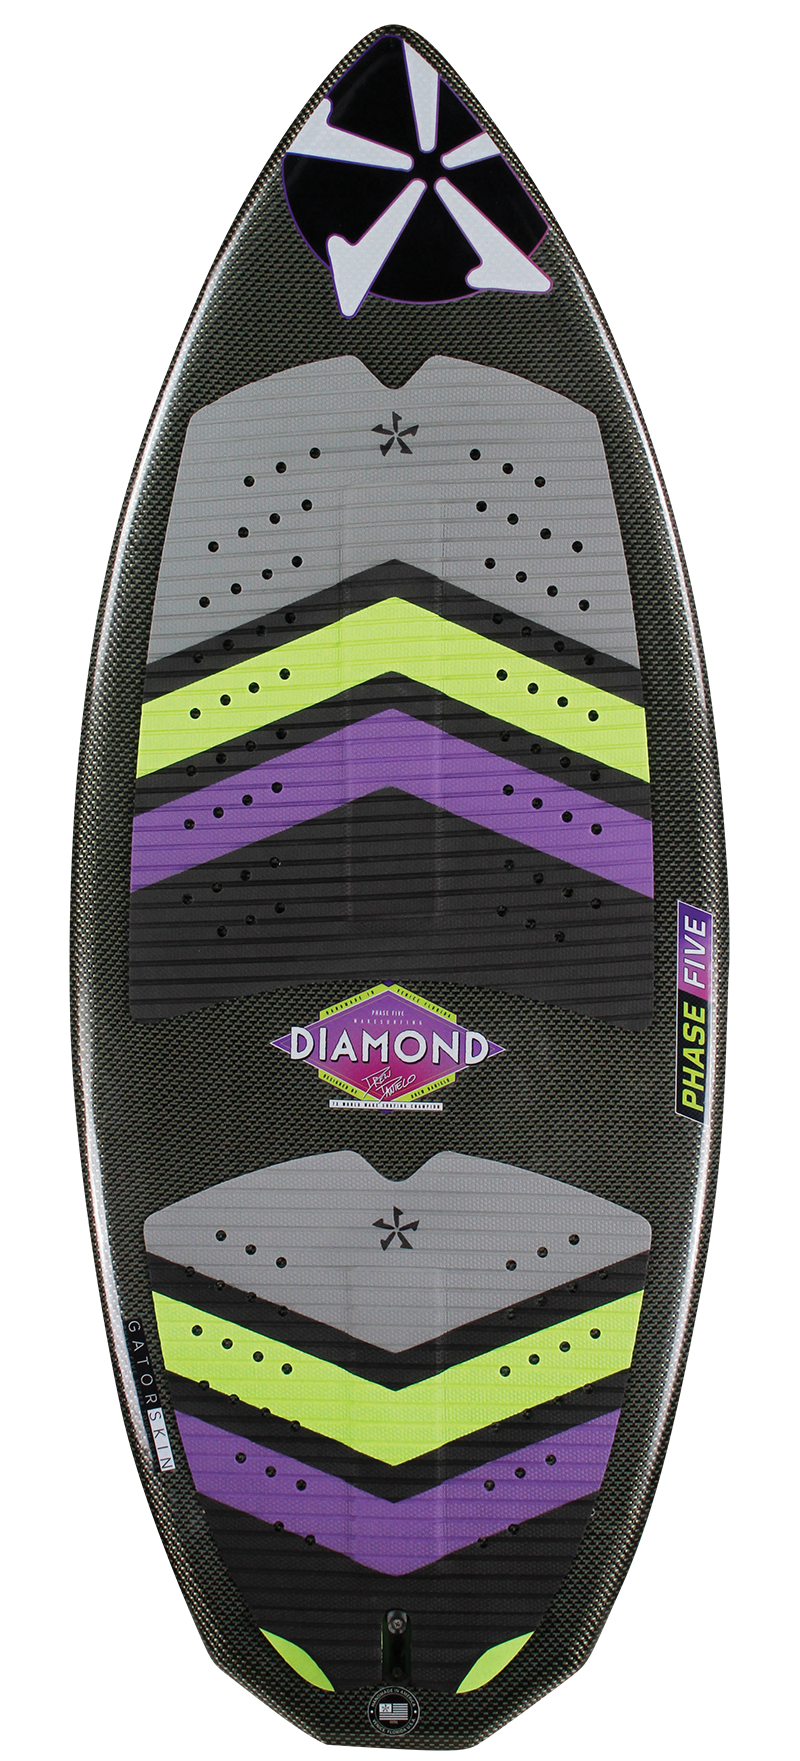 Phase Five Diamond Turbo Wake Skimboard 2020 - 88 Gear